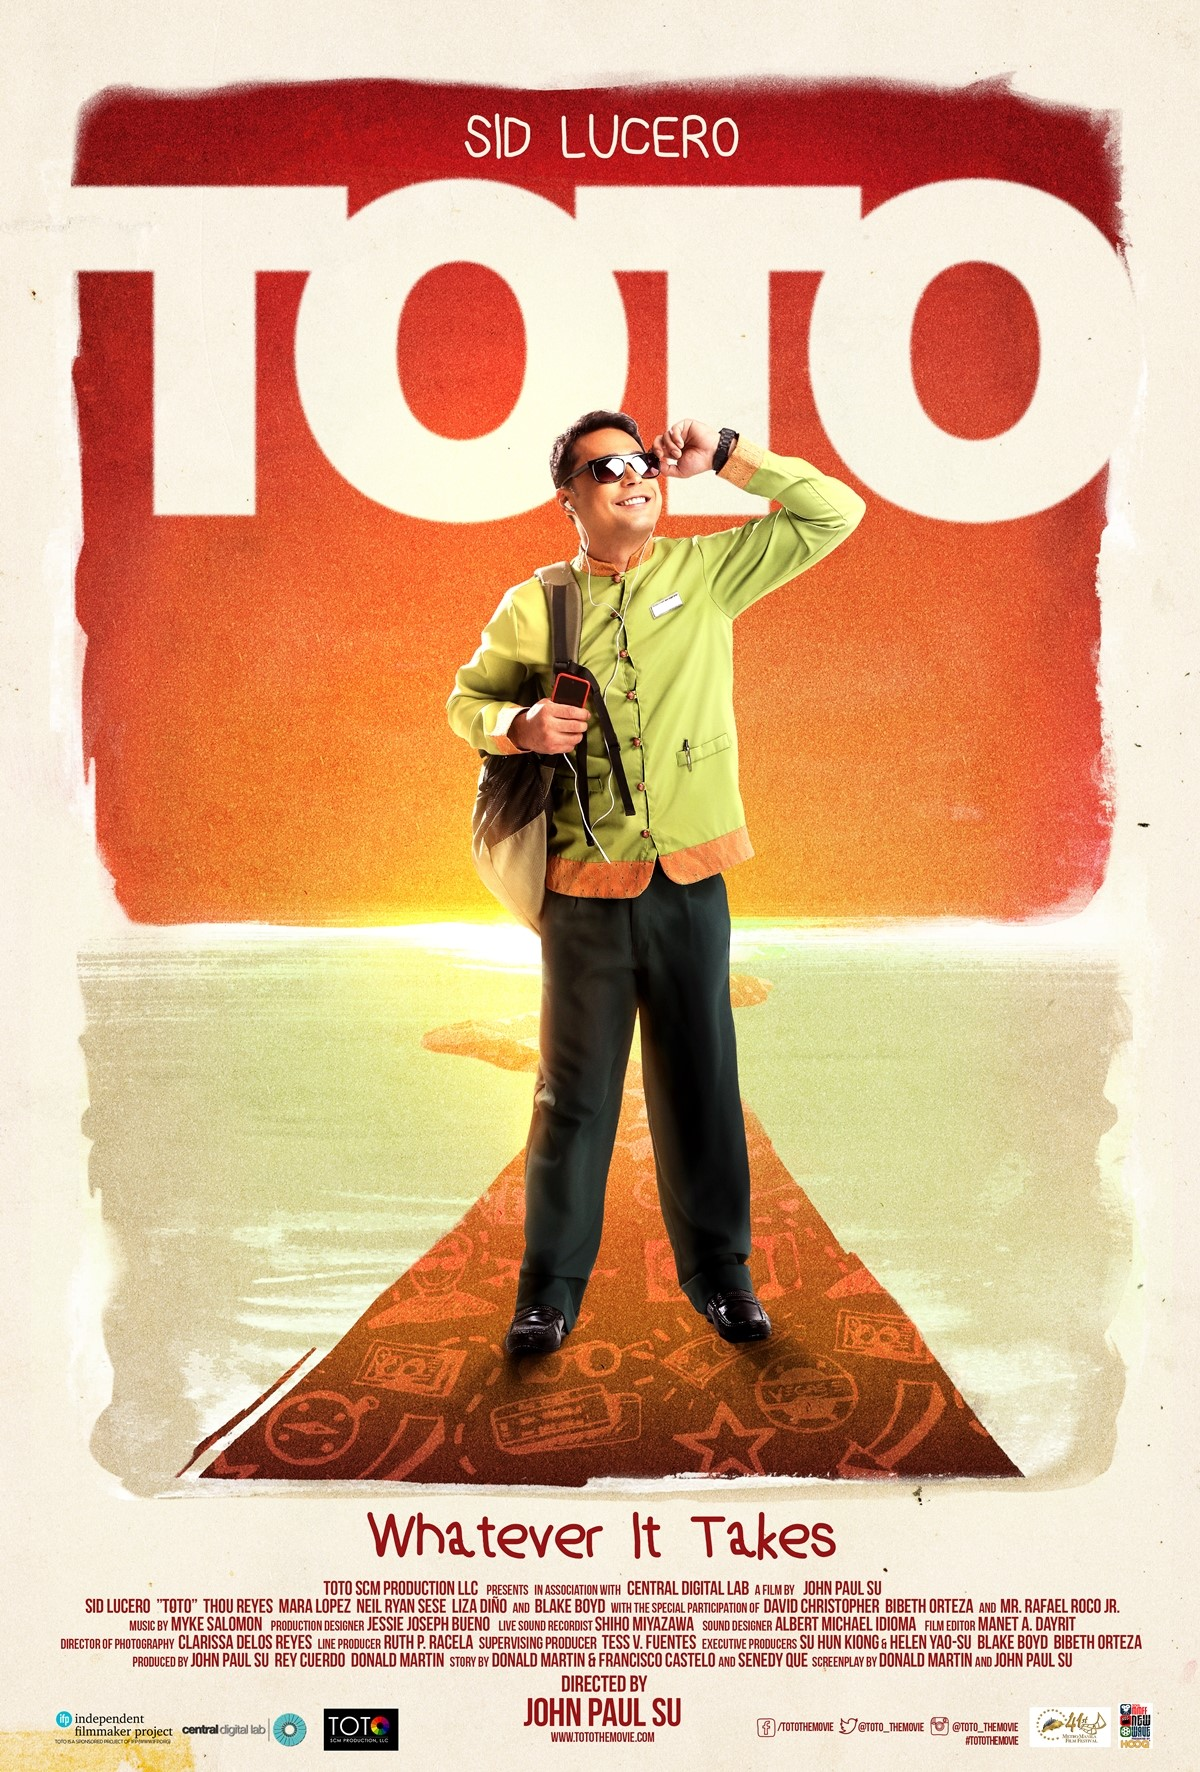 toto-movie-poster-mmff-new-wave-2015.jpg